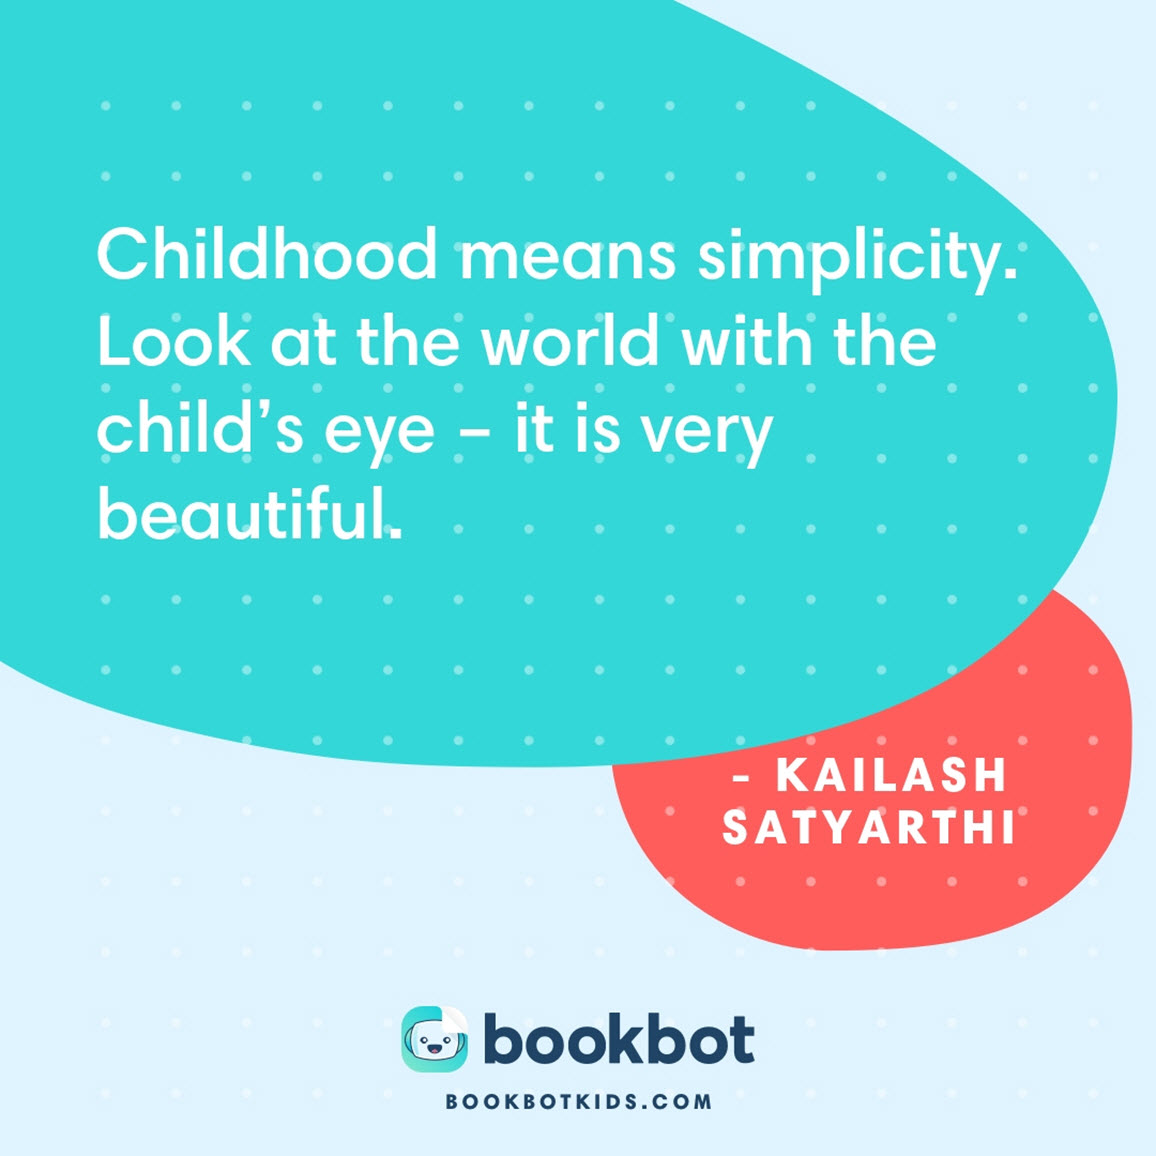 Childhood means simplicity. Look at the world with the child's eye – it is very beautiful. – Kailash Satyarthi